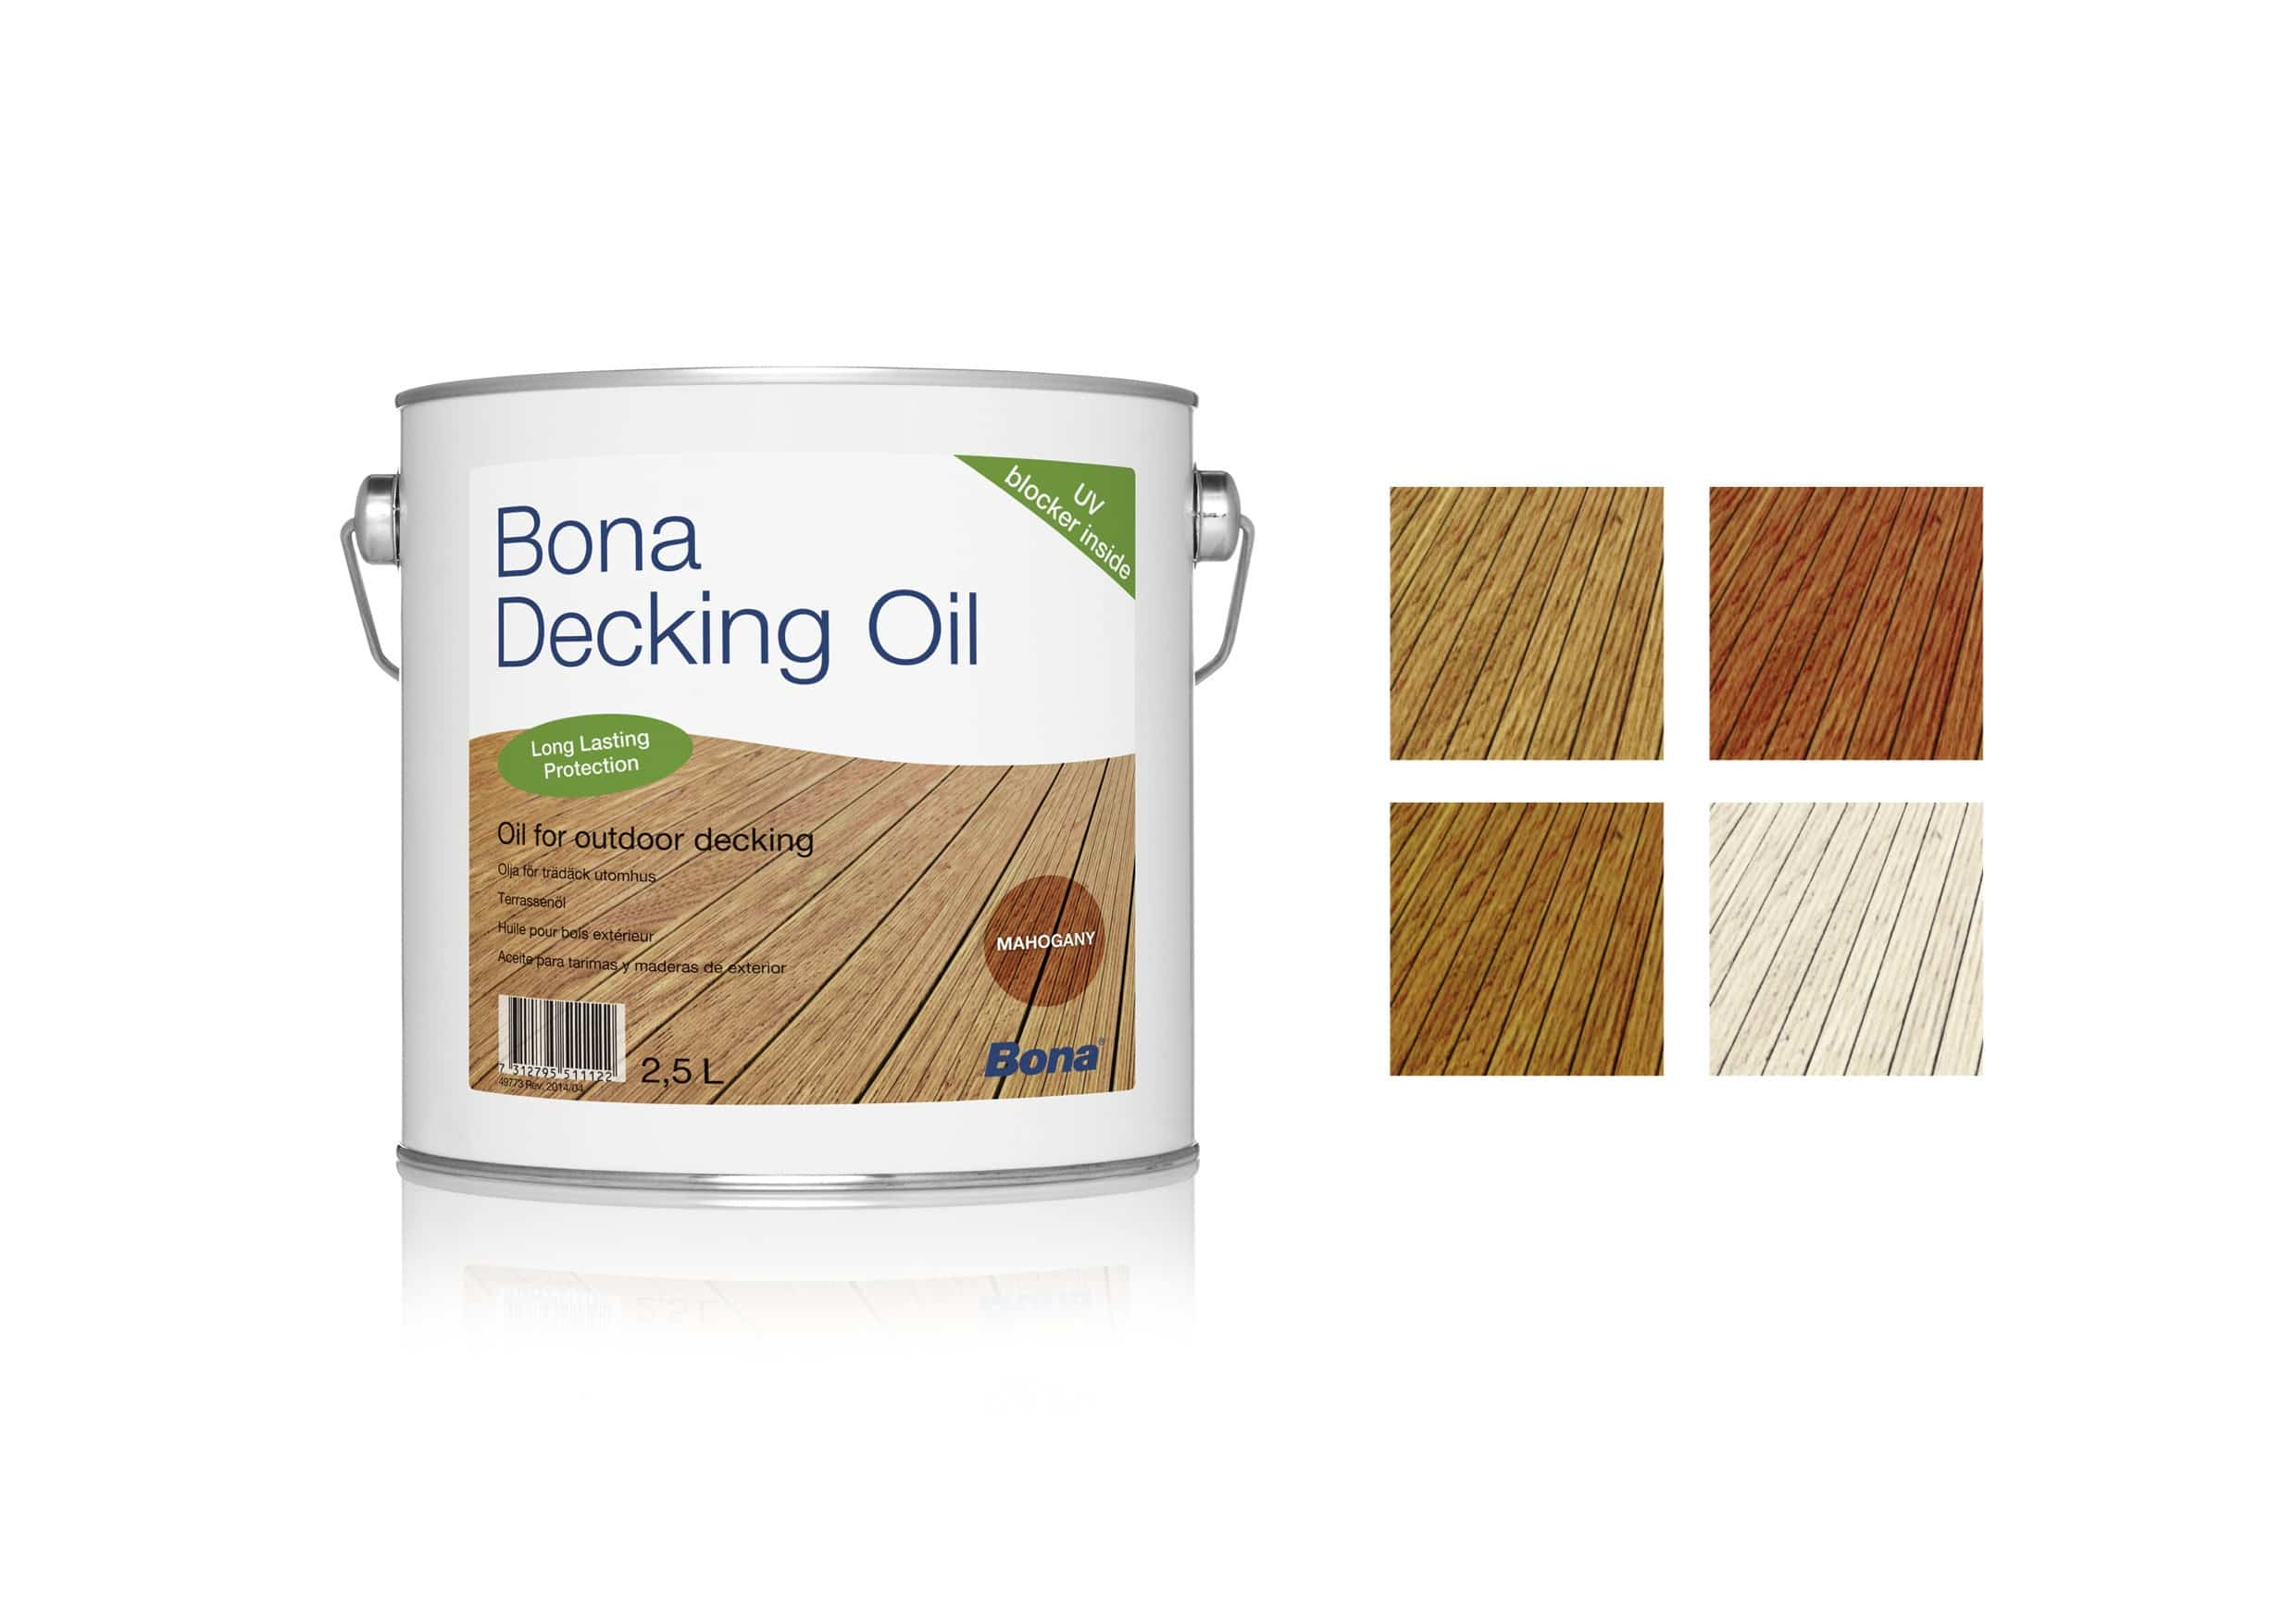 colores disponibles de Bona decking oil